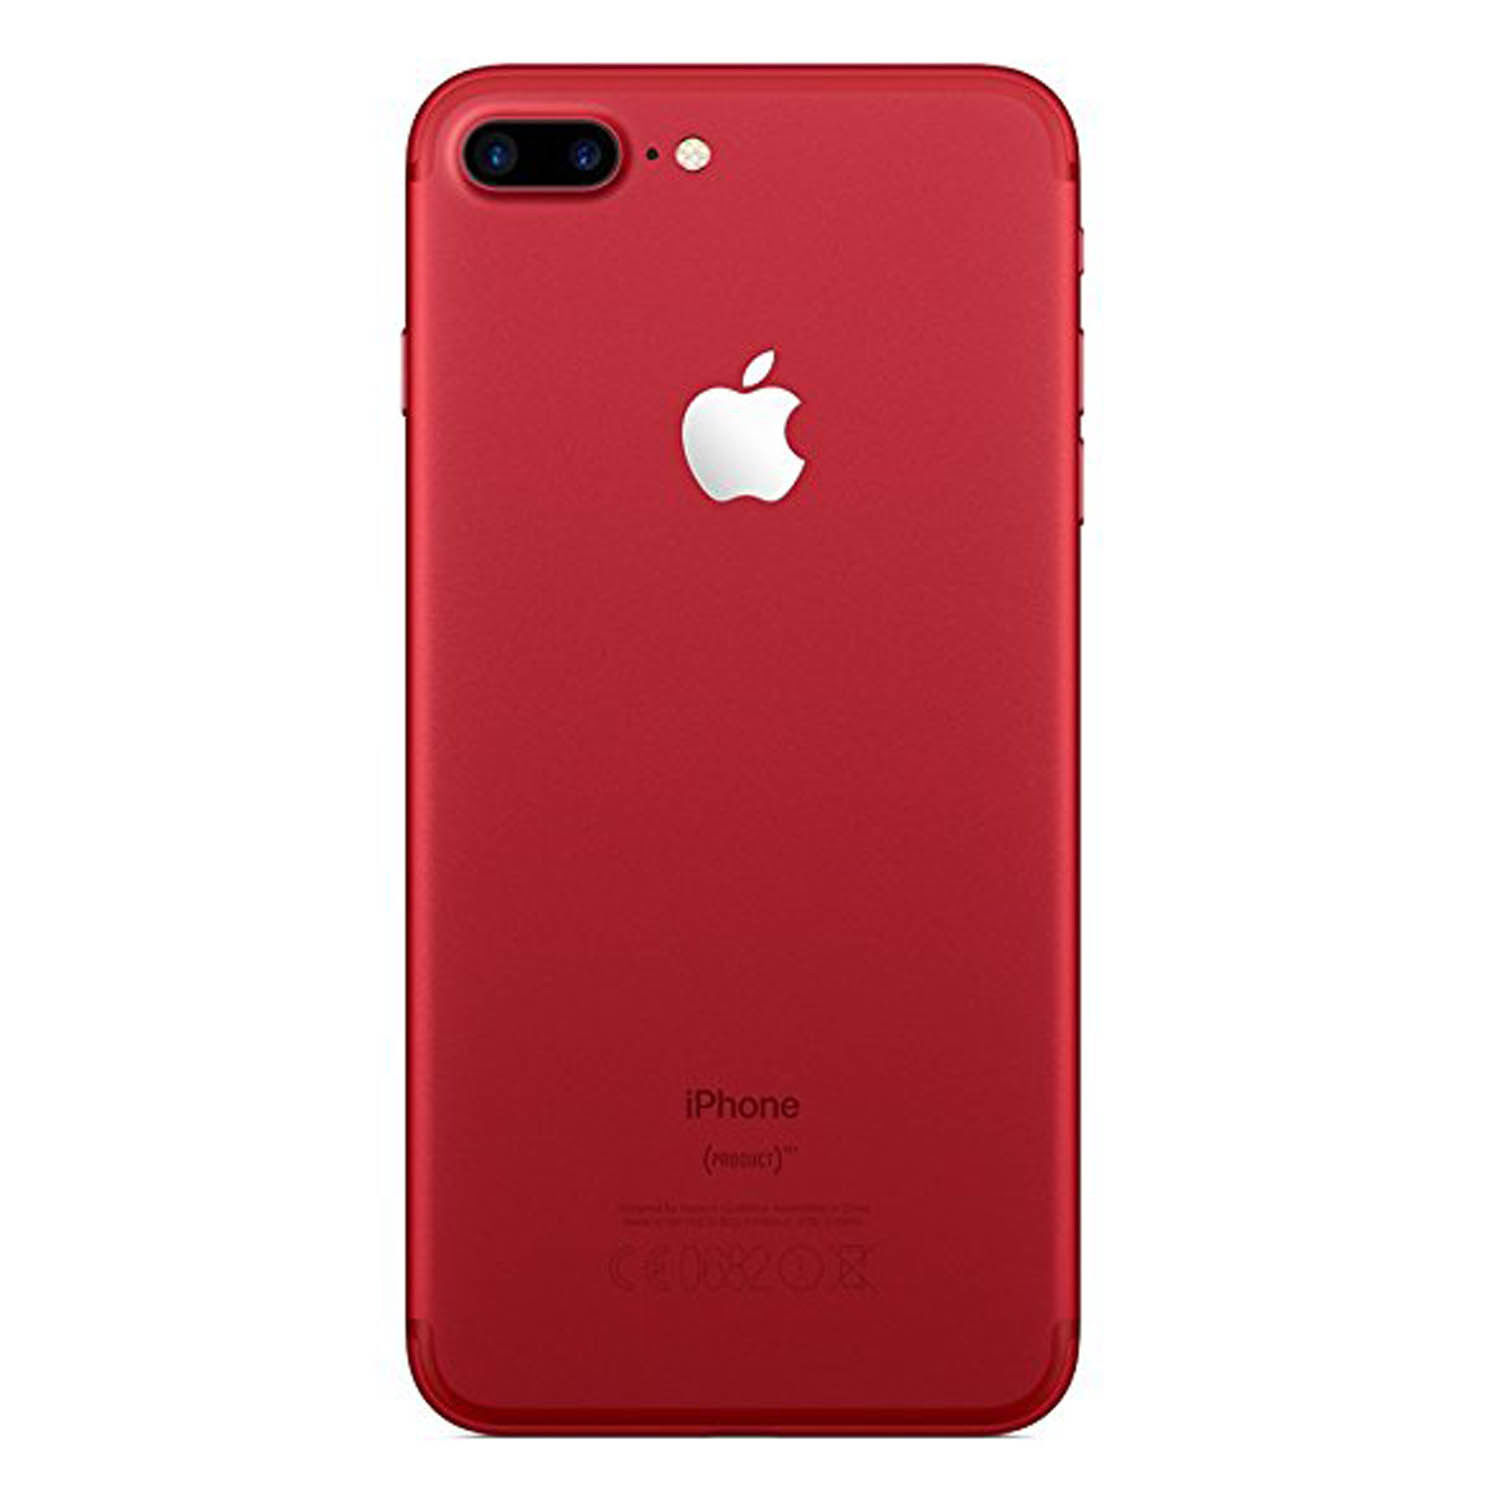 apple iphone 7 plus product red128gb factory unlocked. Black Bedroom Furniture Sets. Home Design Ideas